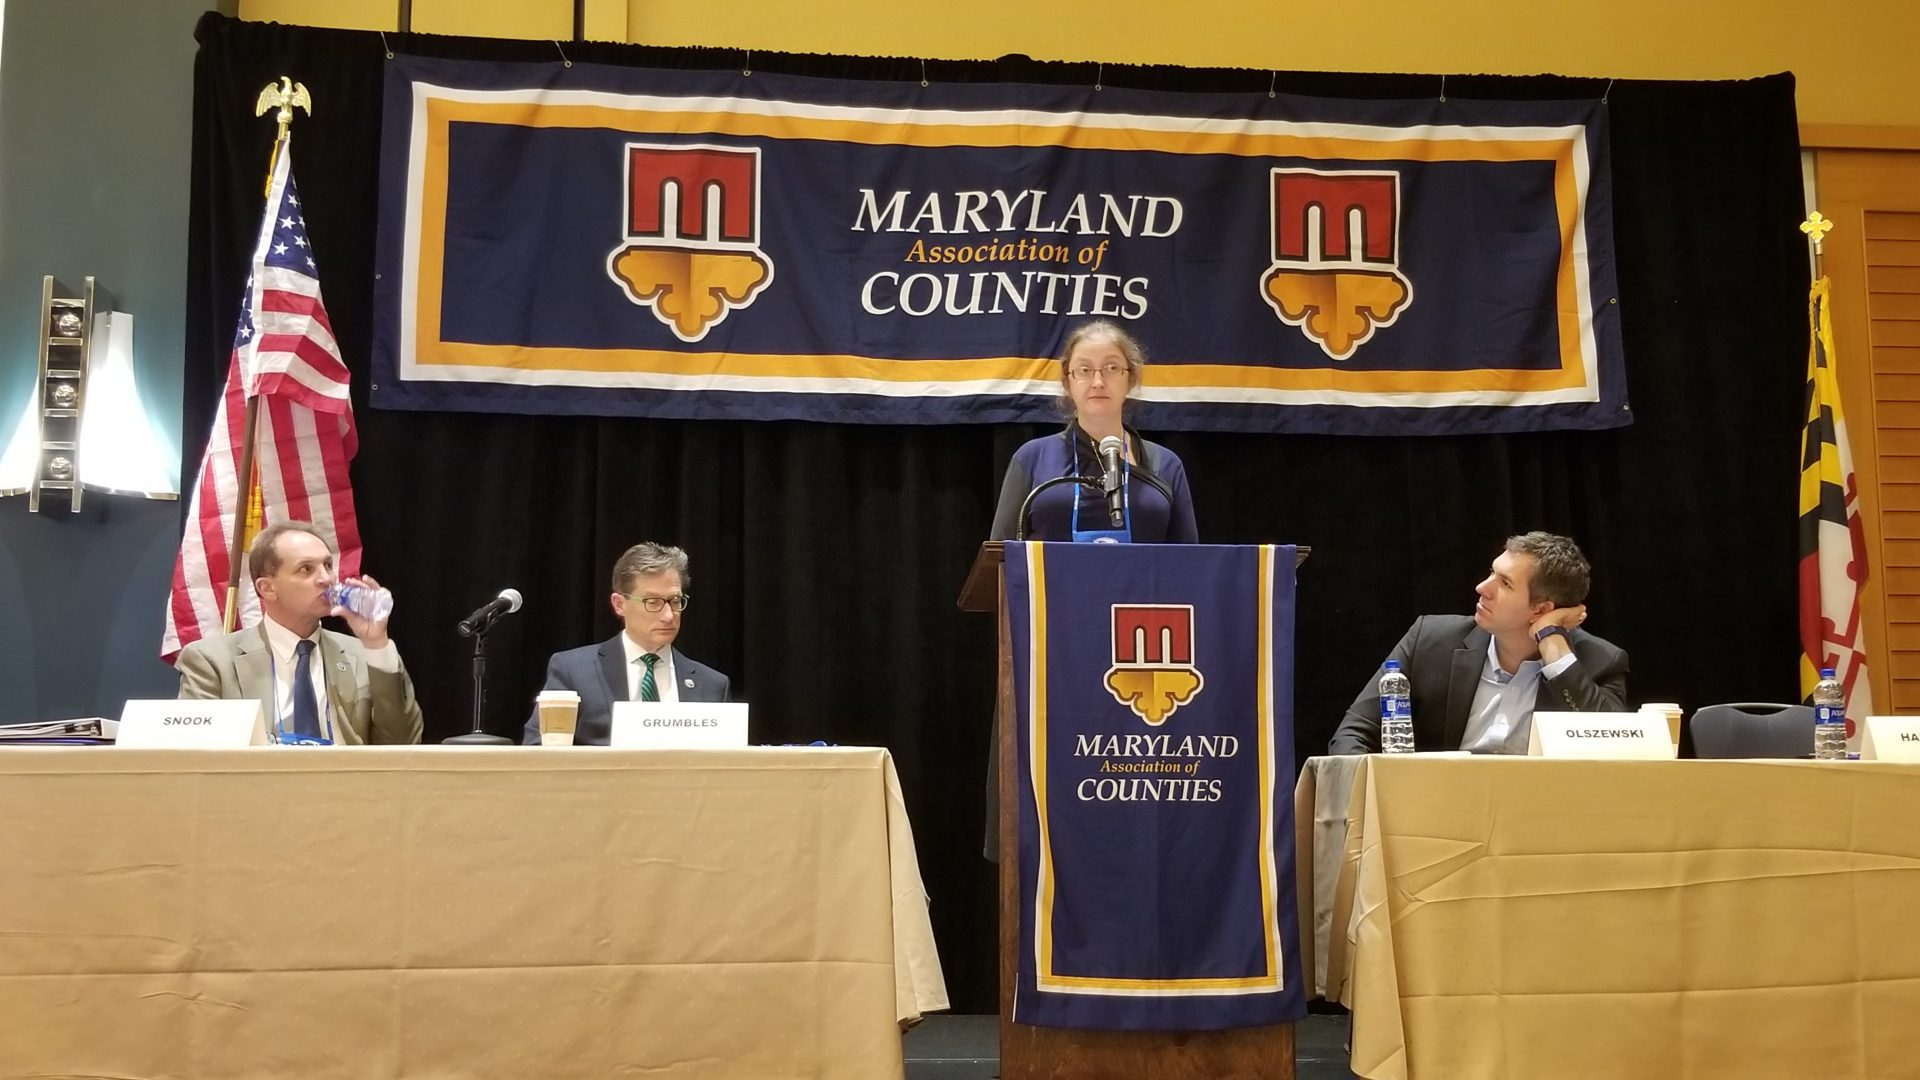 Attendees Glimpse Maryland's Clean Energy Future at #MACoCon